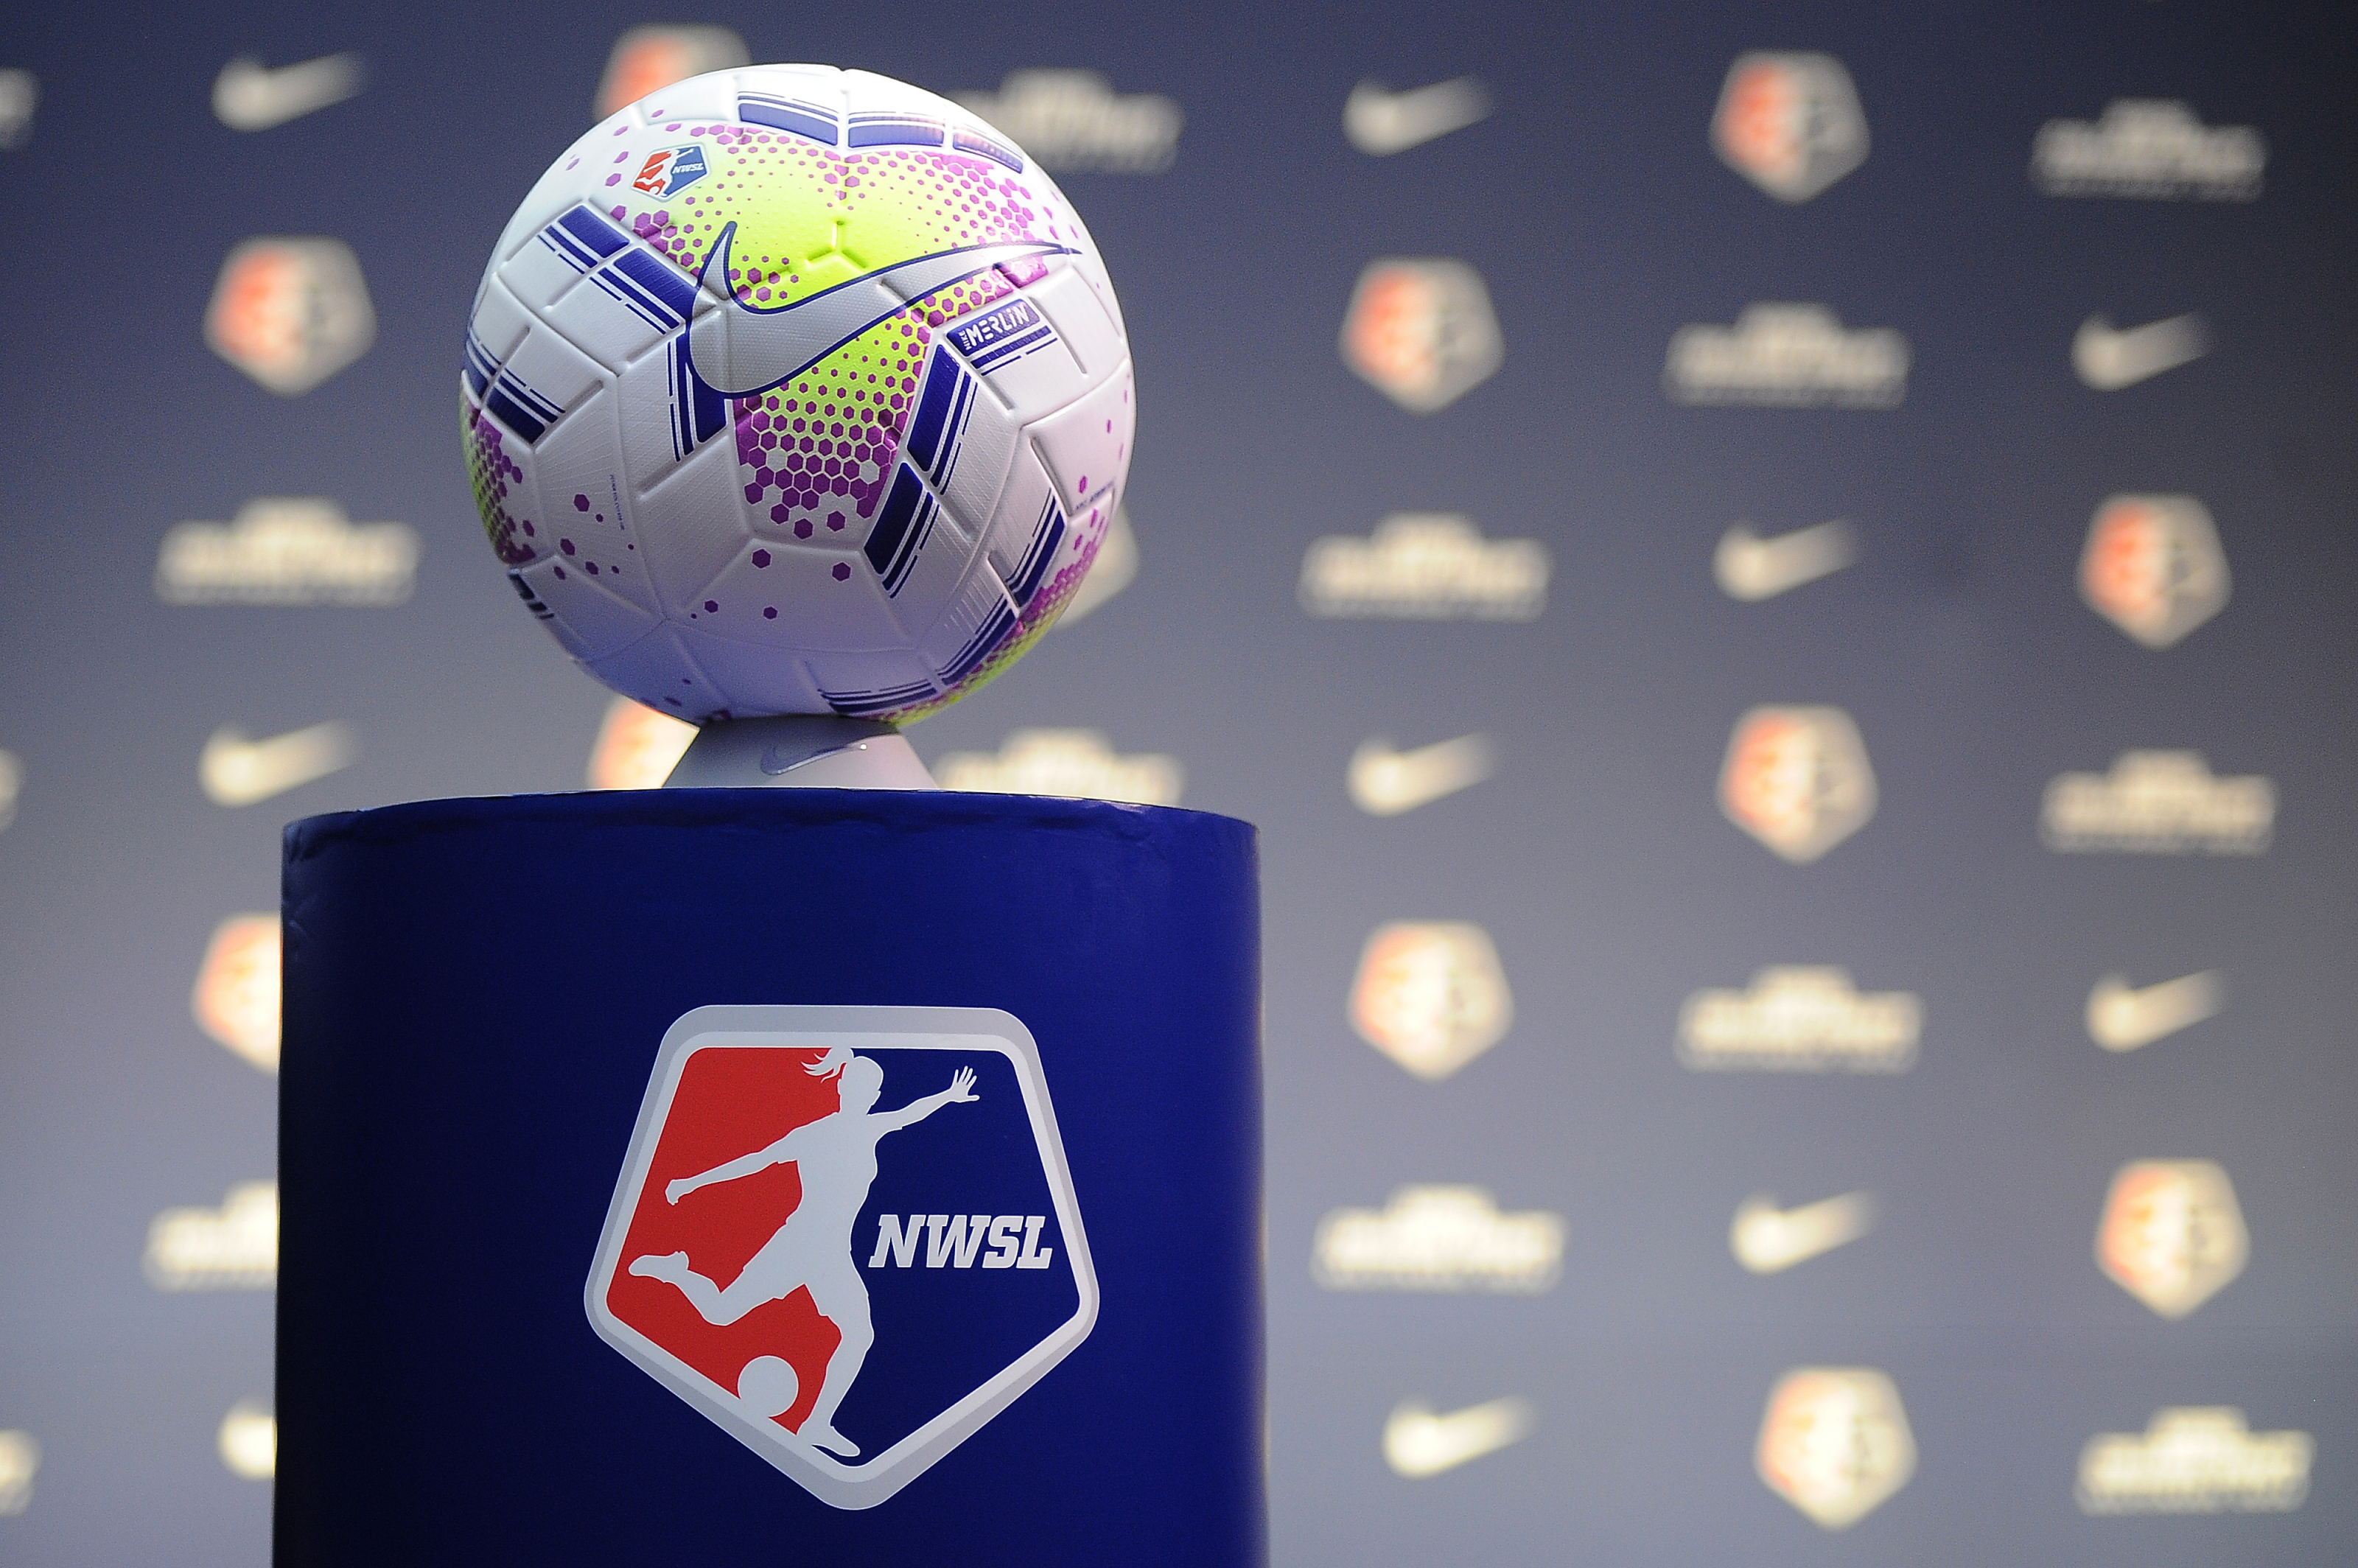 How will new NWSL commissioner Lisa Baird shape the league?